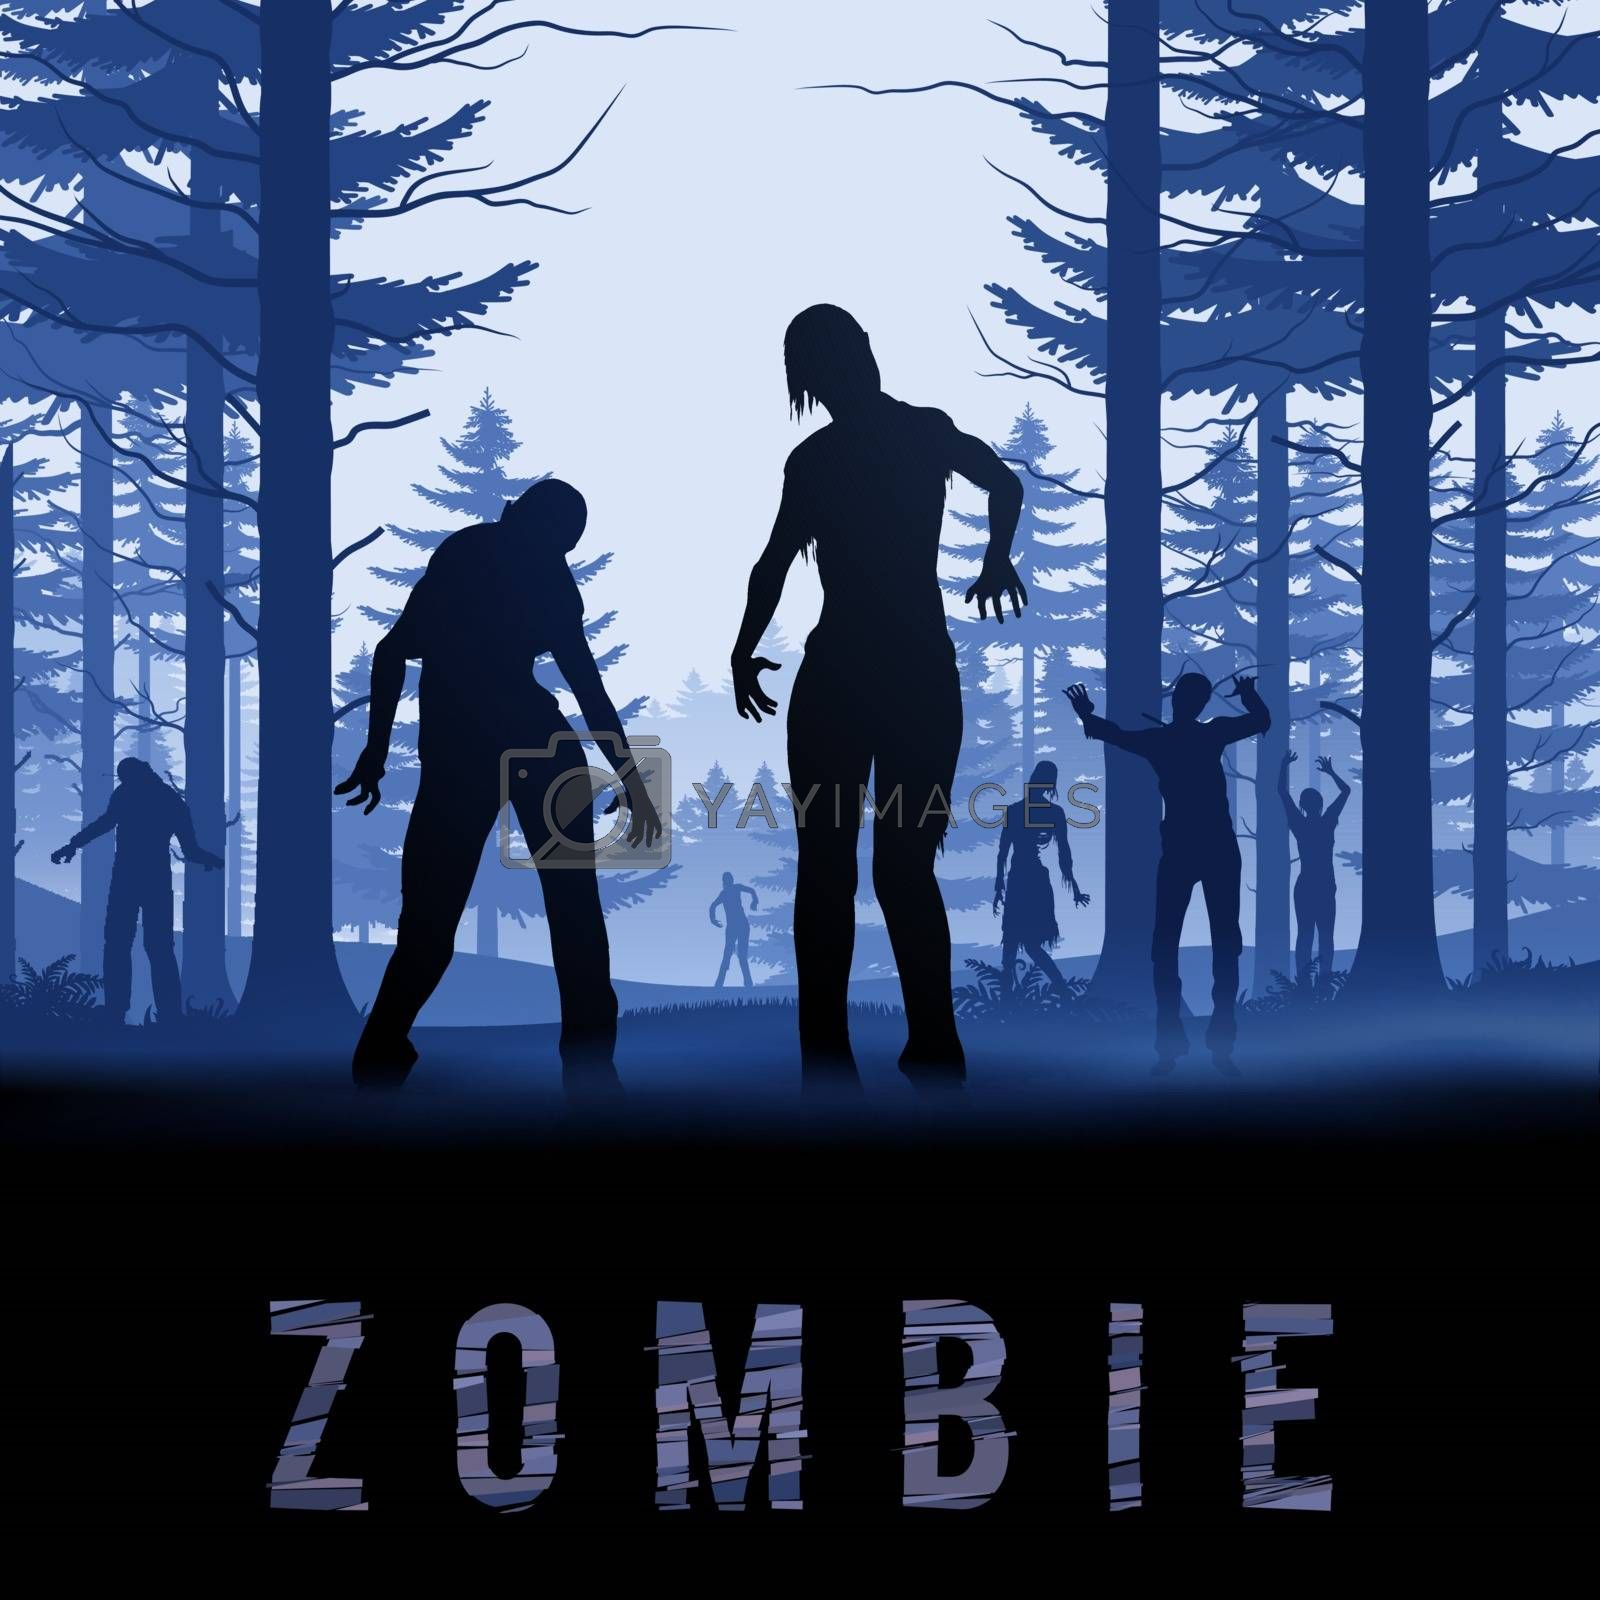 Zombie Walking out From Morning Forest. Silhouettes Illustration for Halloween Poster